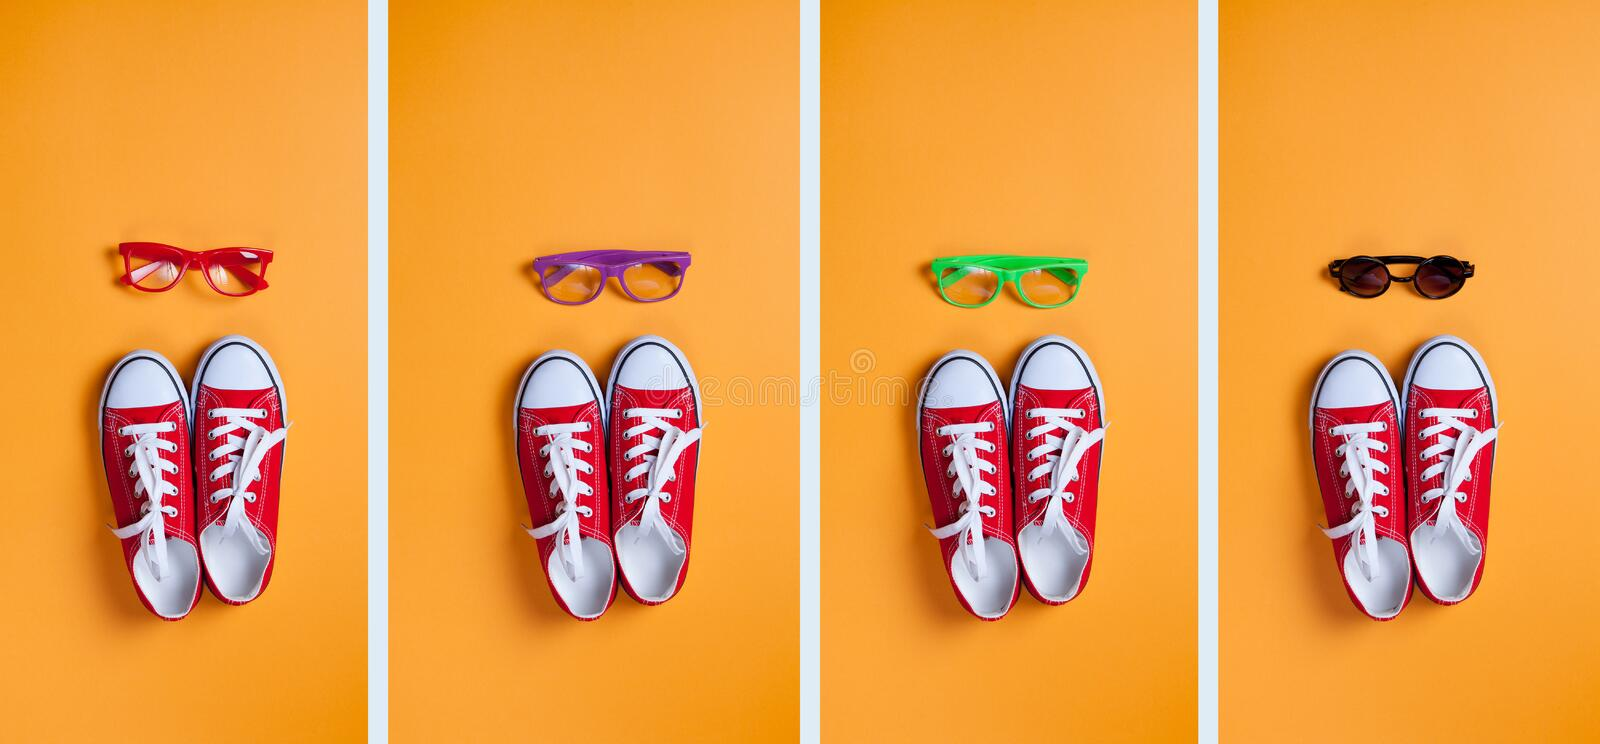 Group of images of red gumshoes and glasses. On orange background royalty free stock photography